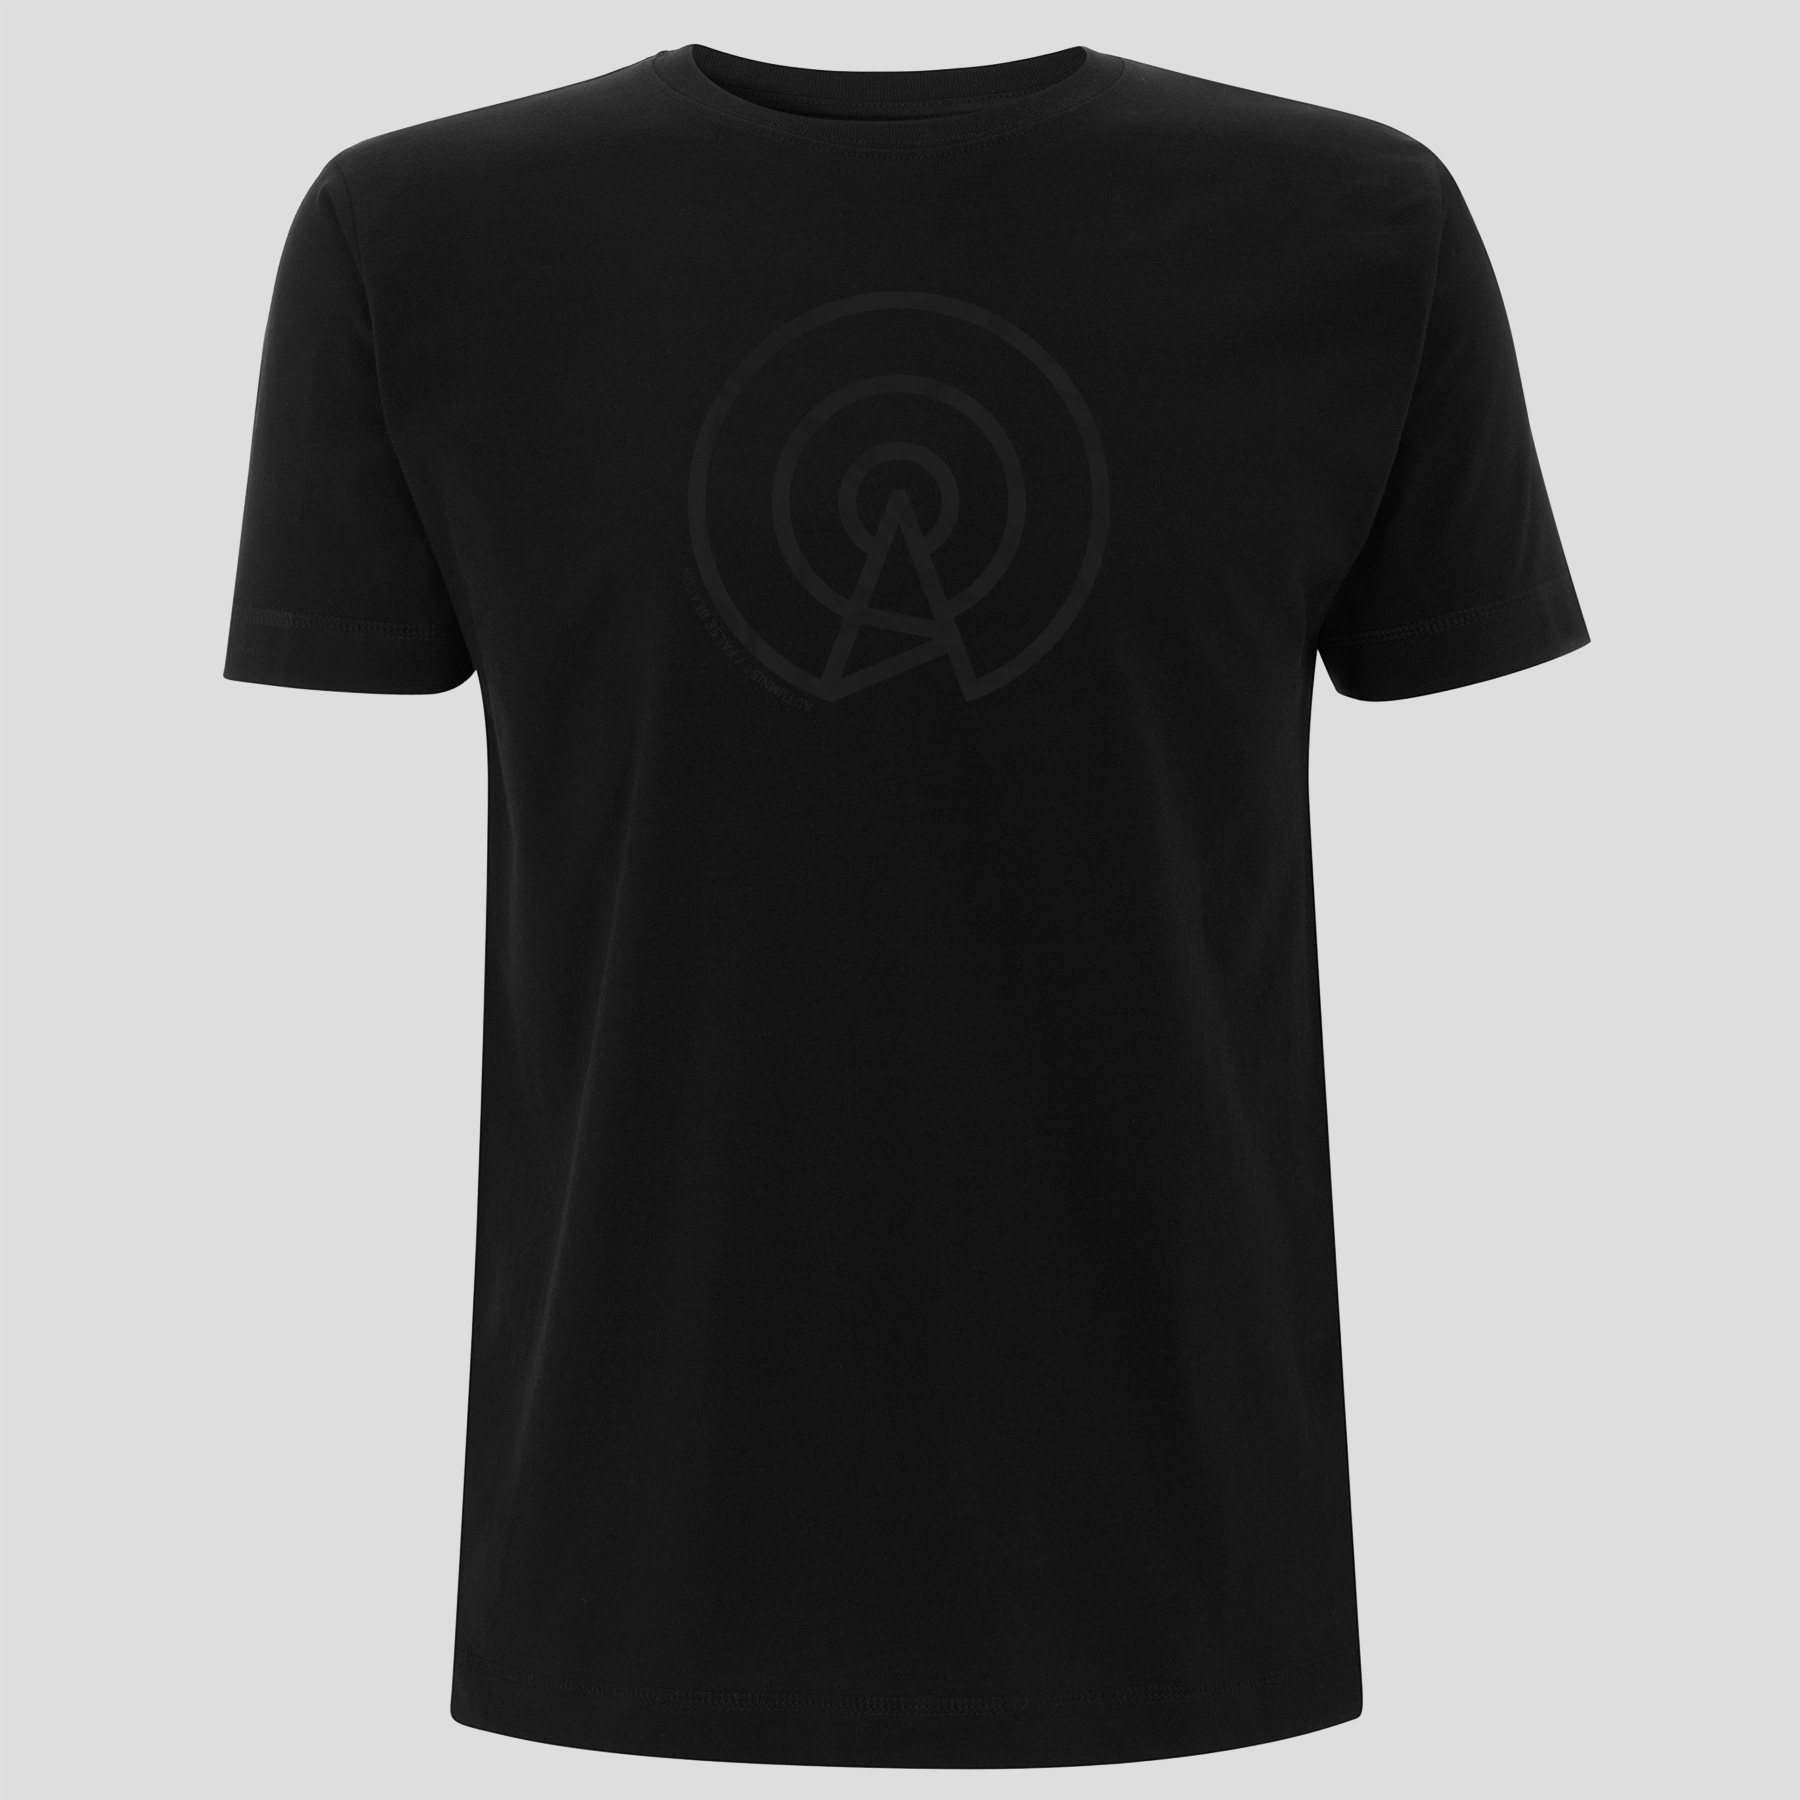 Autumnist - False Beacon (T-Shirt, Men, Black-Black)